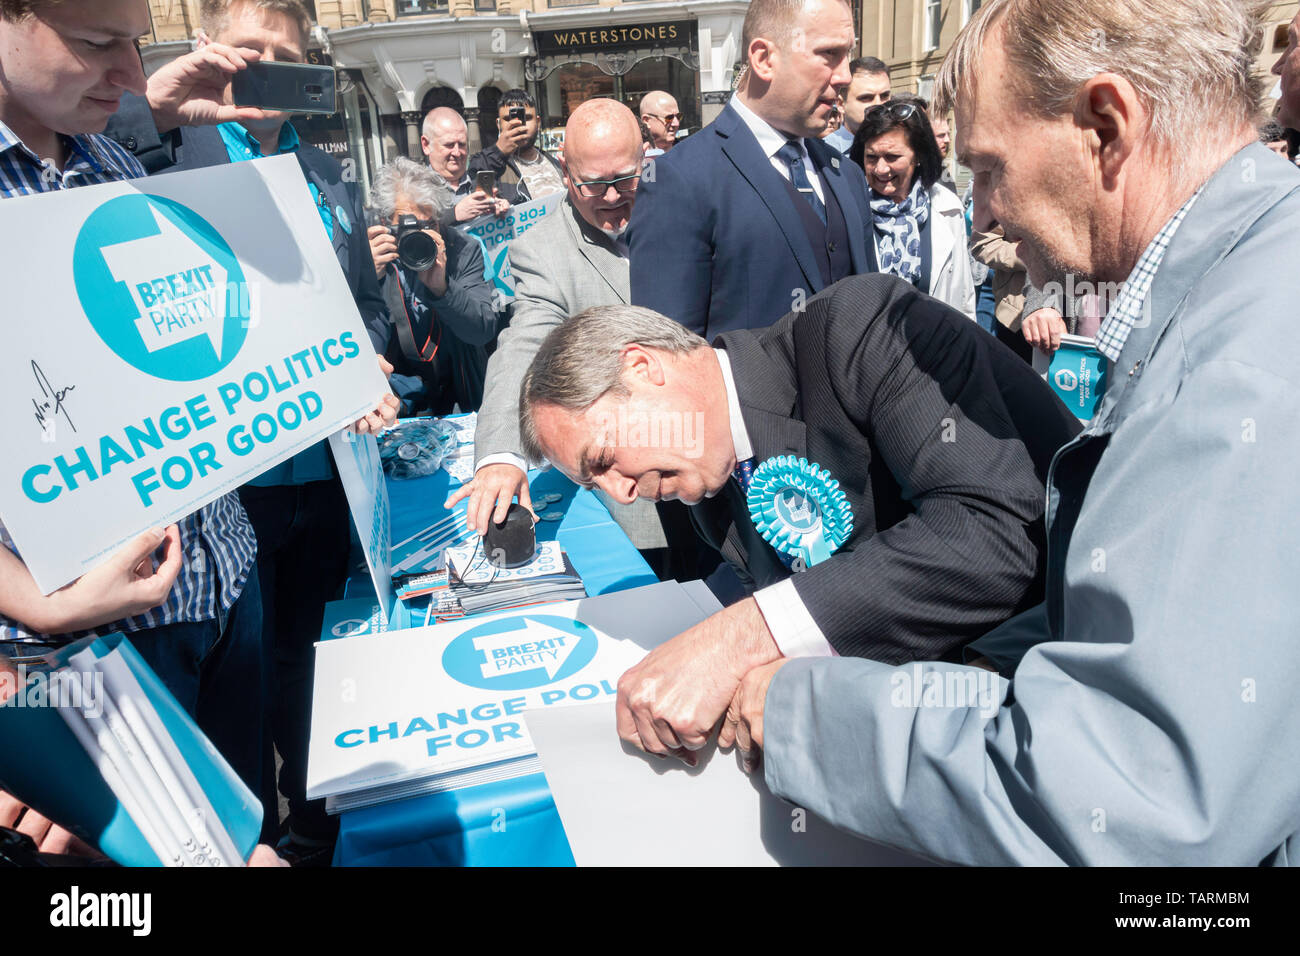 Newcastle upon Tyne, UK. 20th May 2019. UK. Nigel Farage meeting fellow Brexit Party members - Stock Image